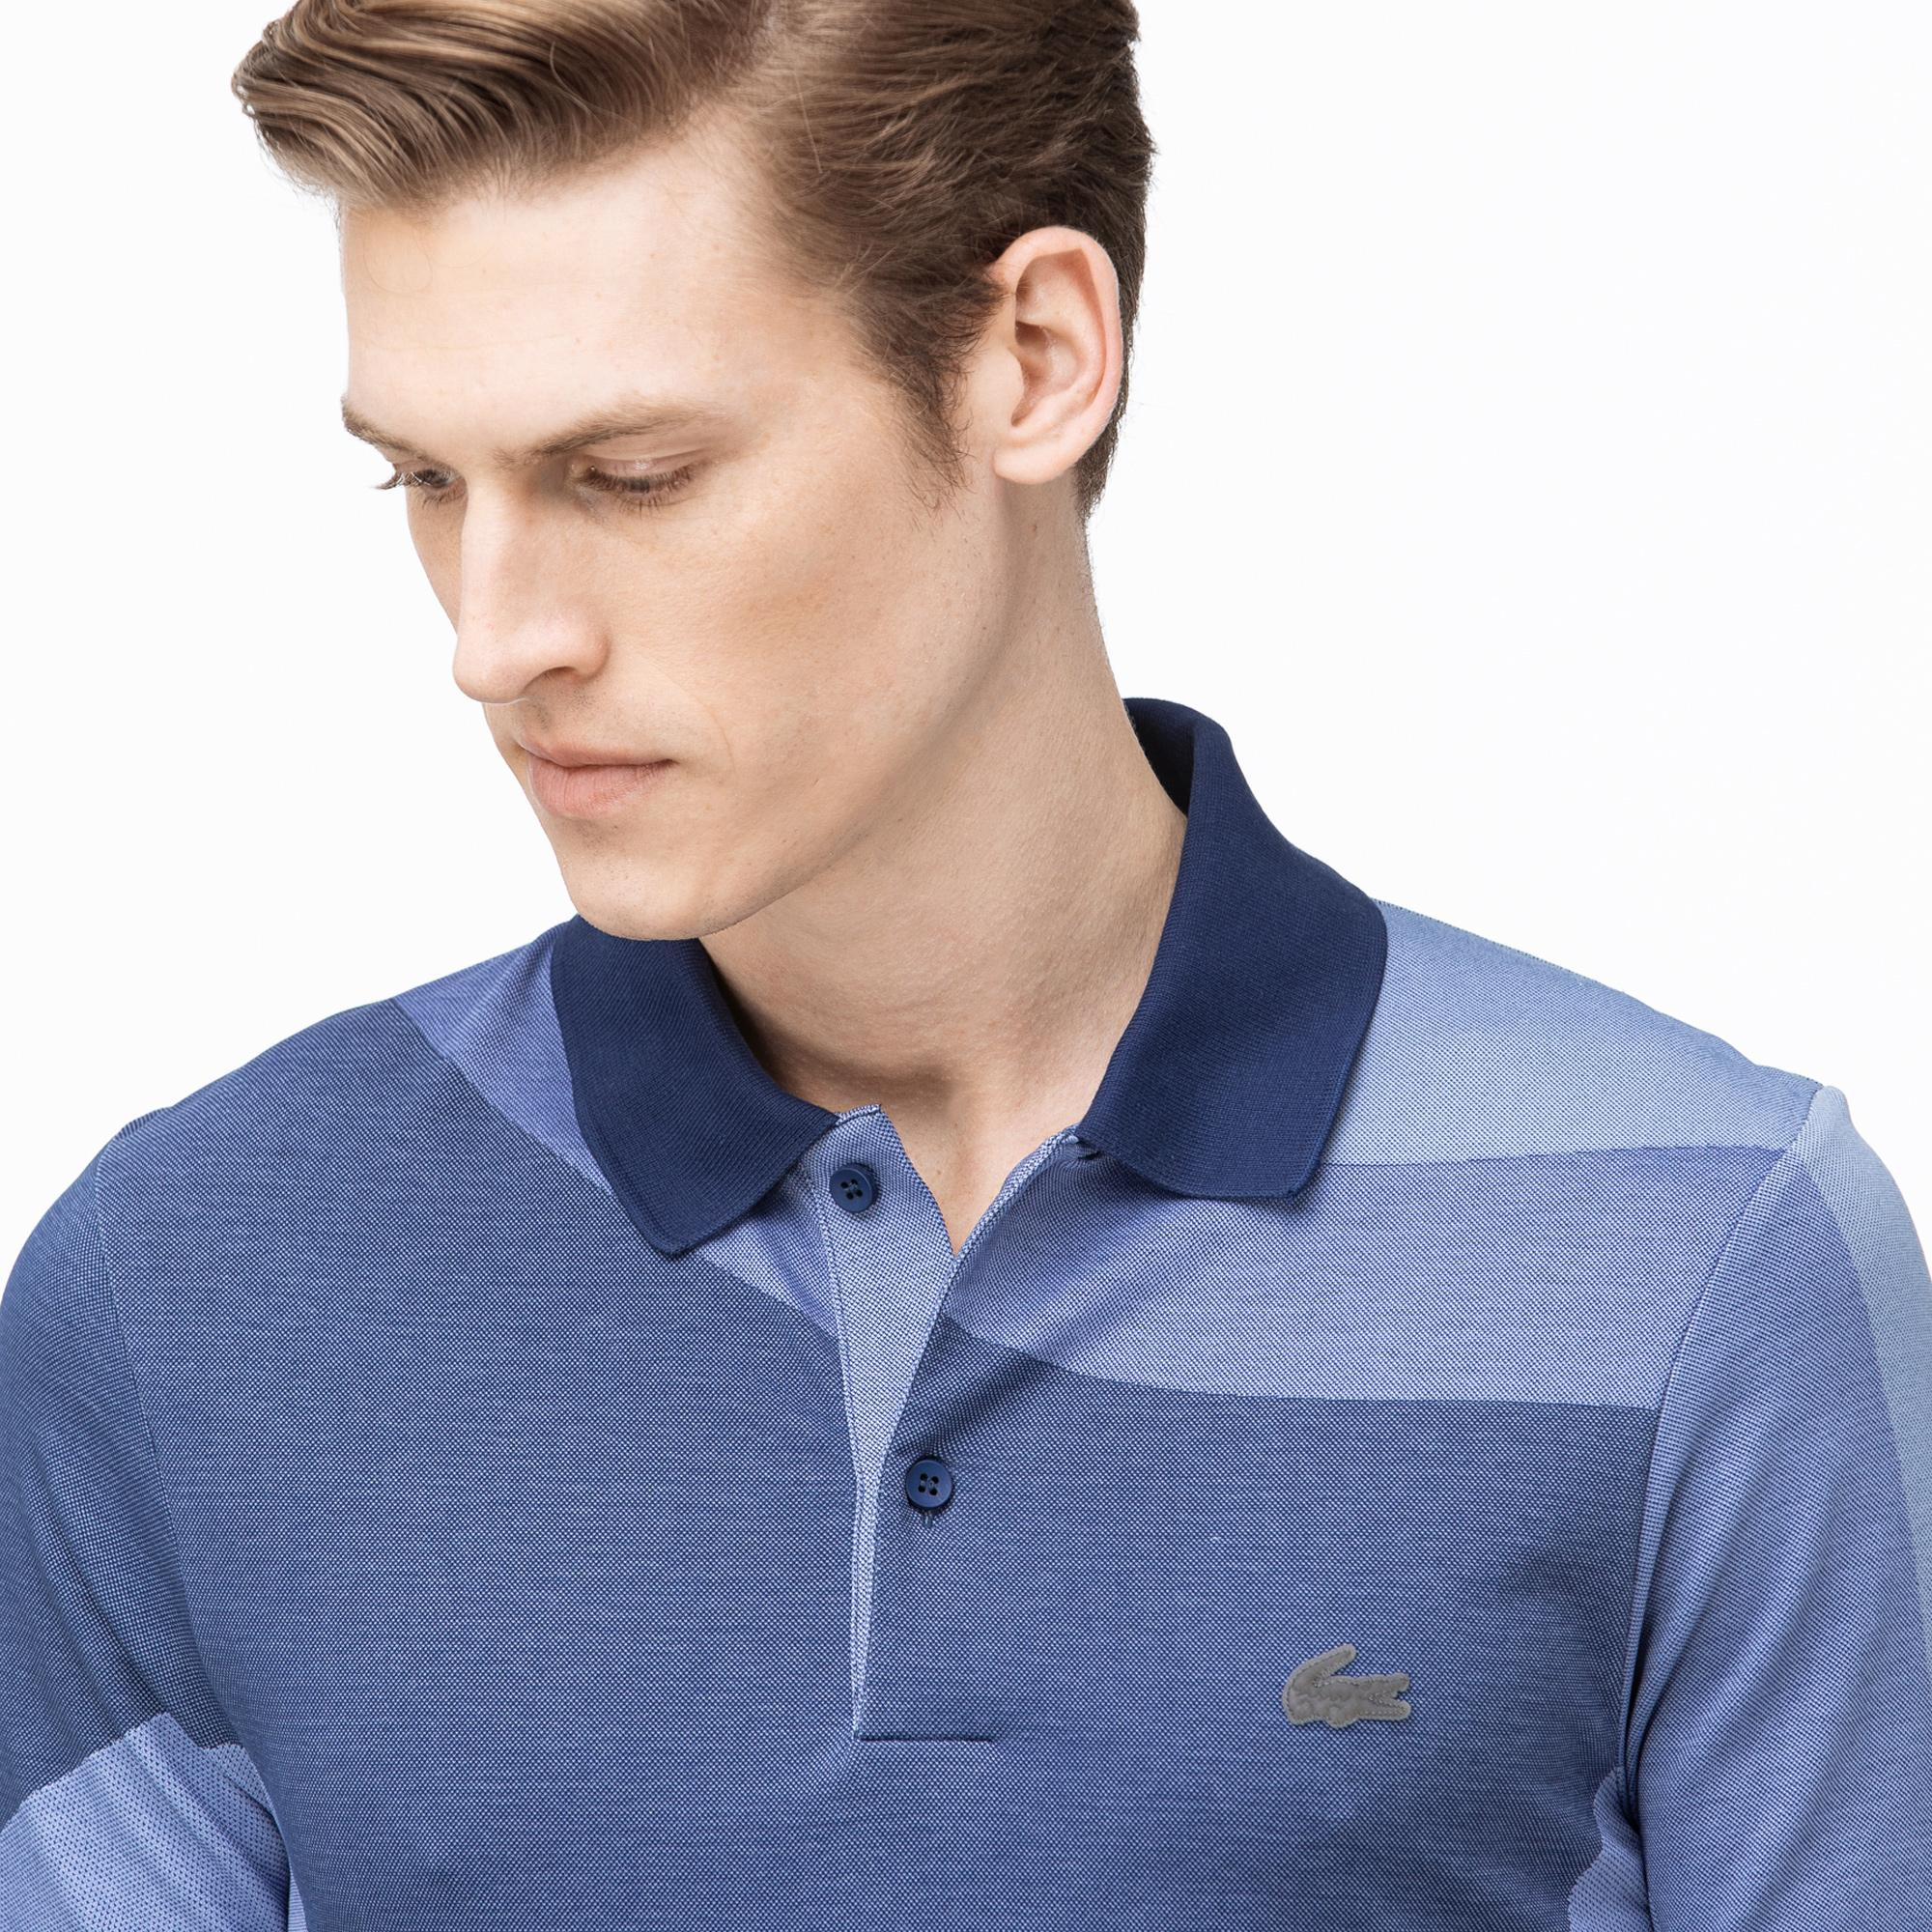 Lacoste Men's Motion Ergonomic Polo